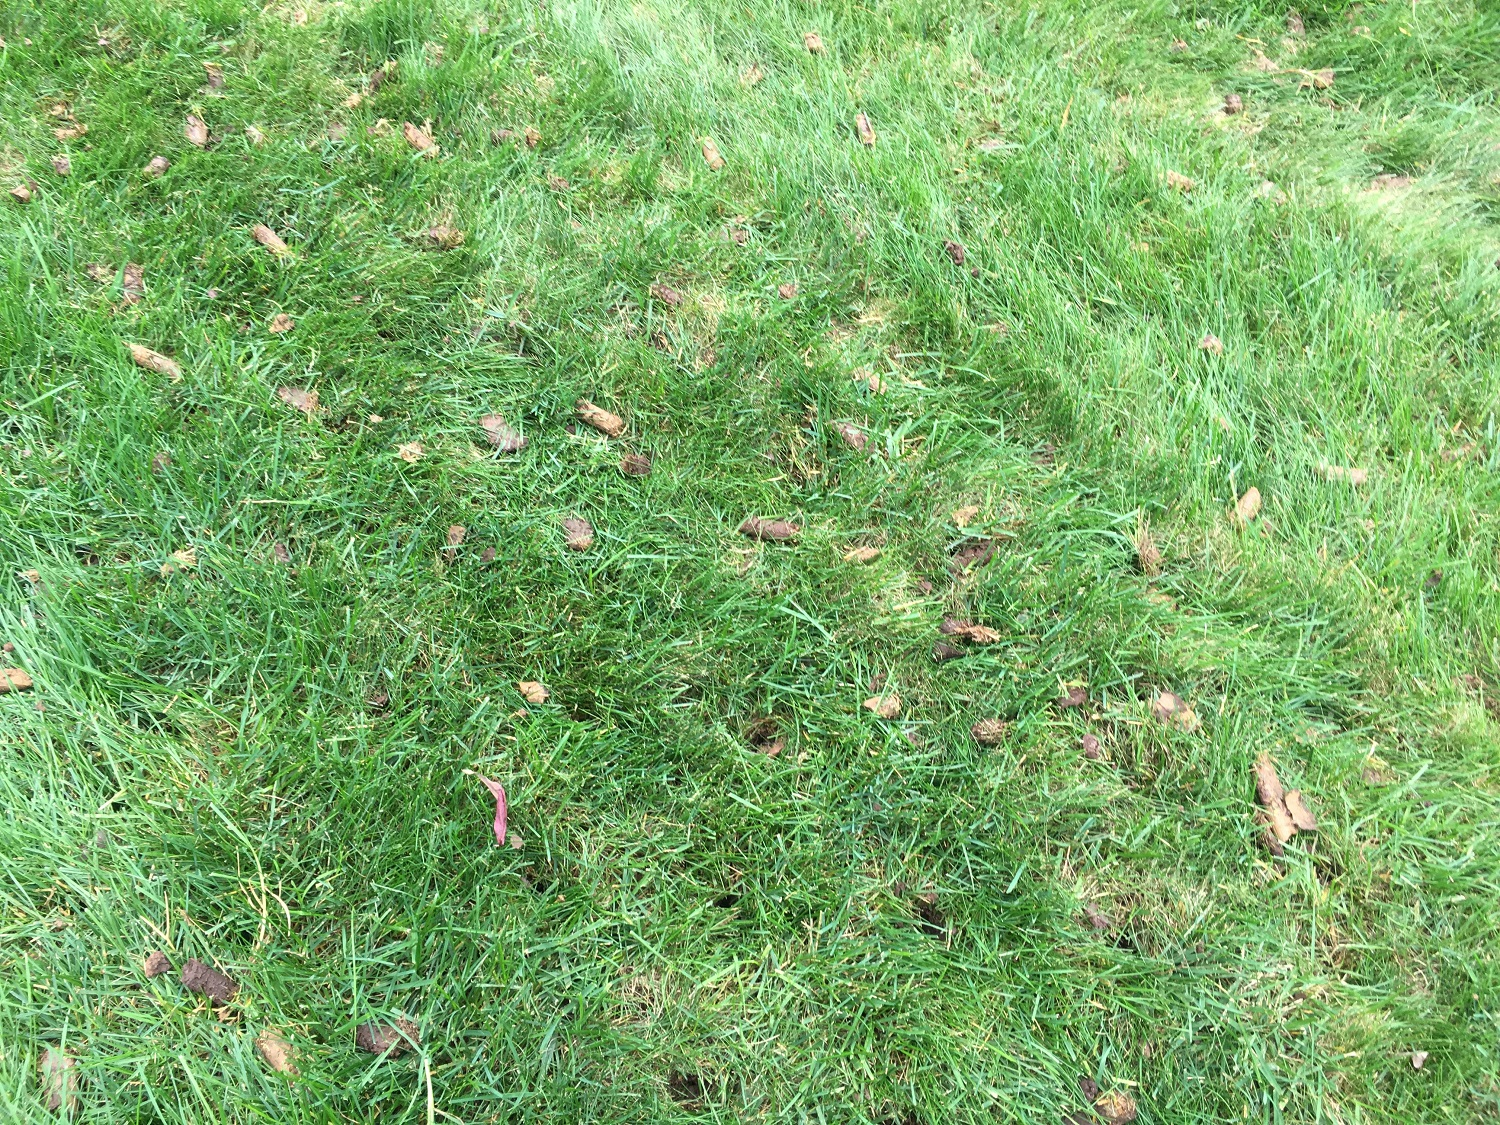 lawn aeration plugs in grass